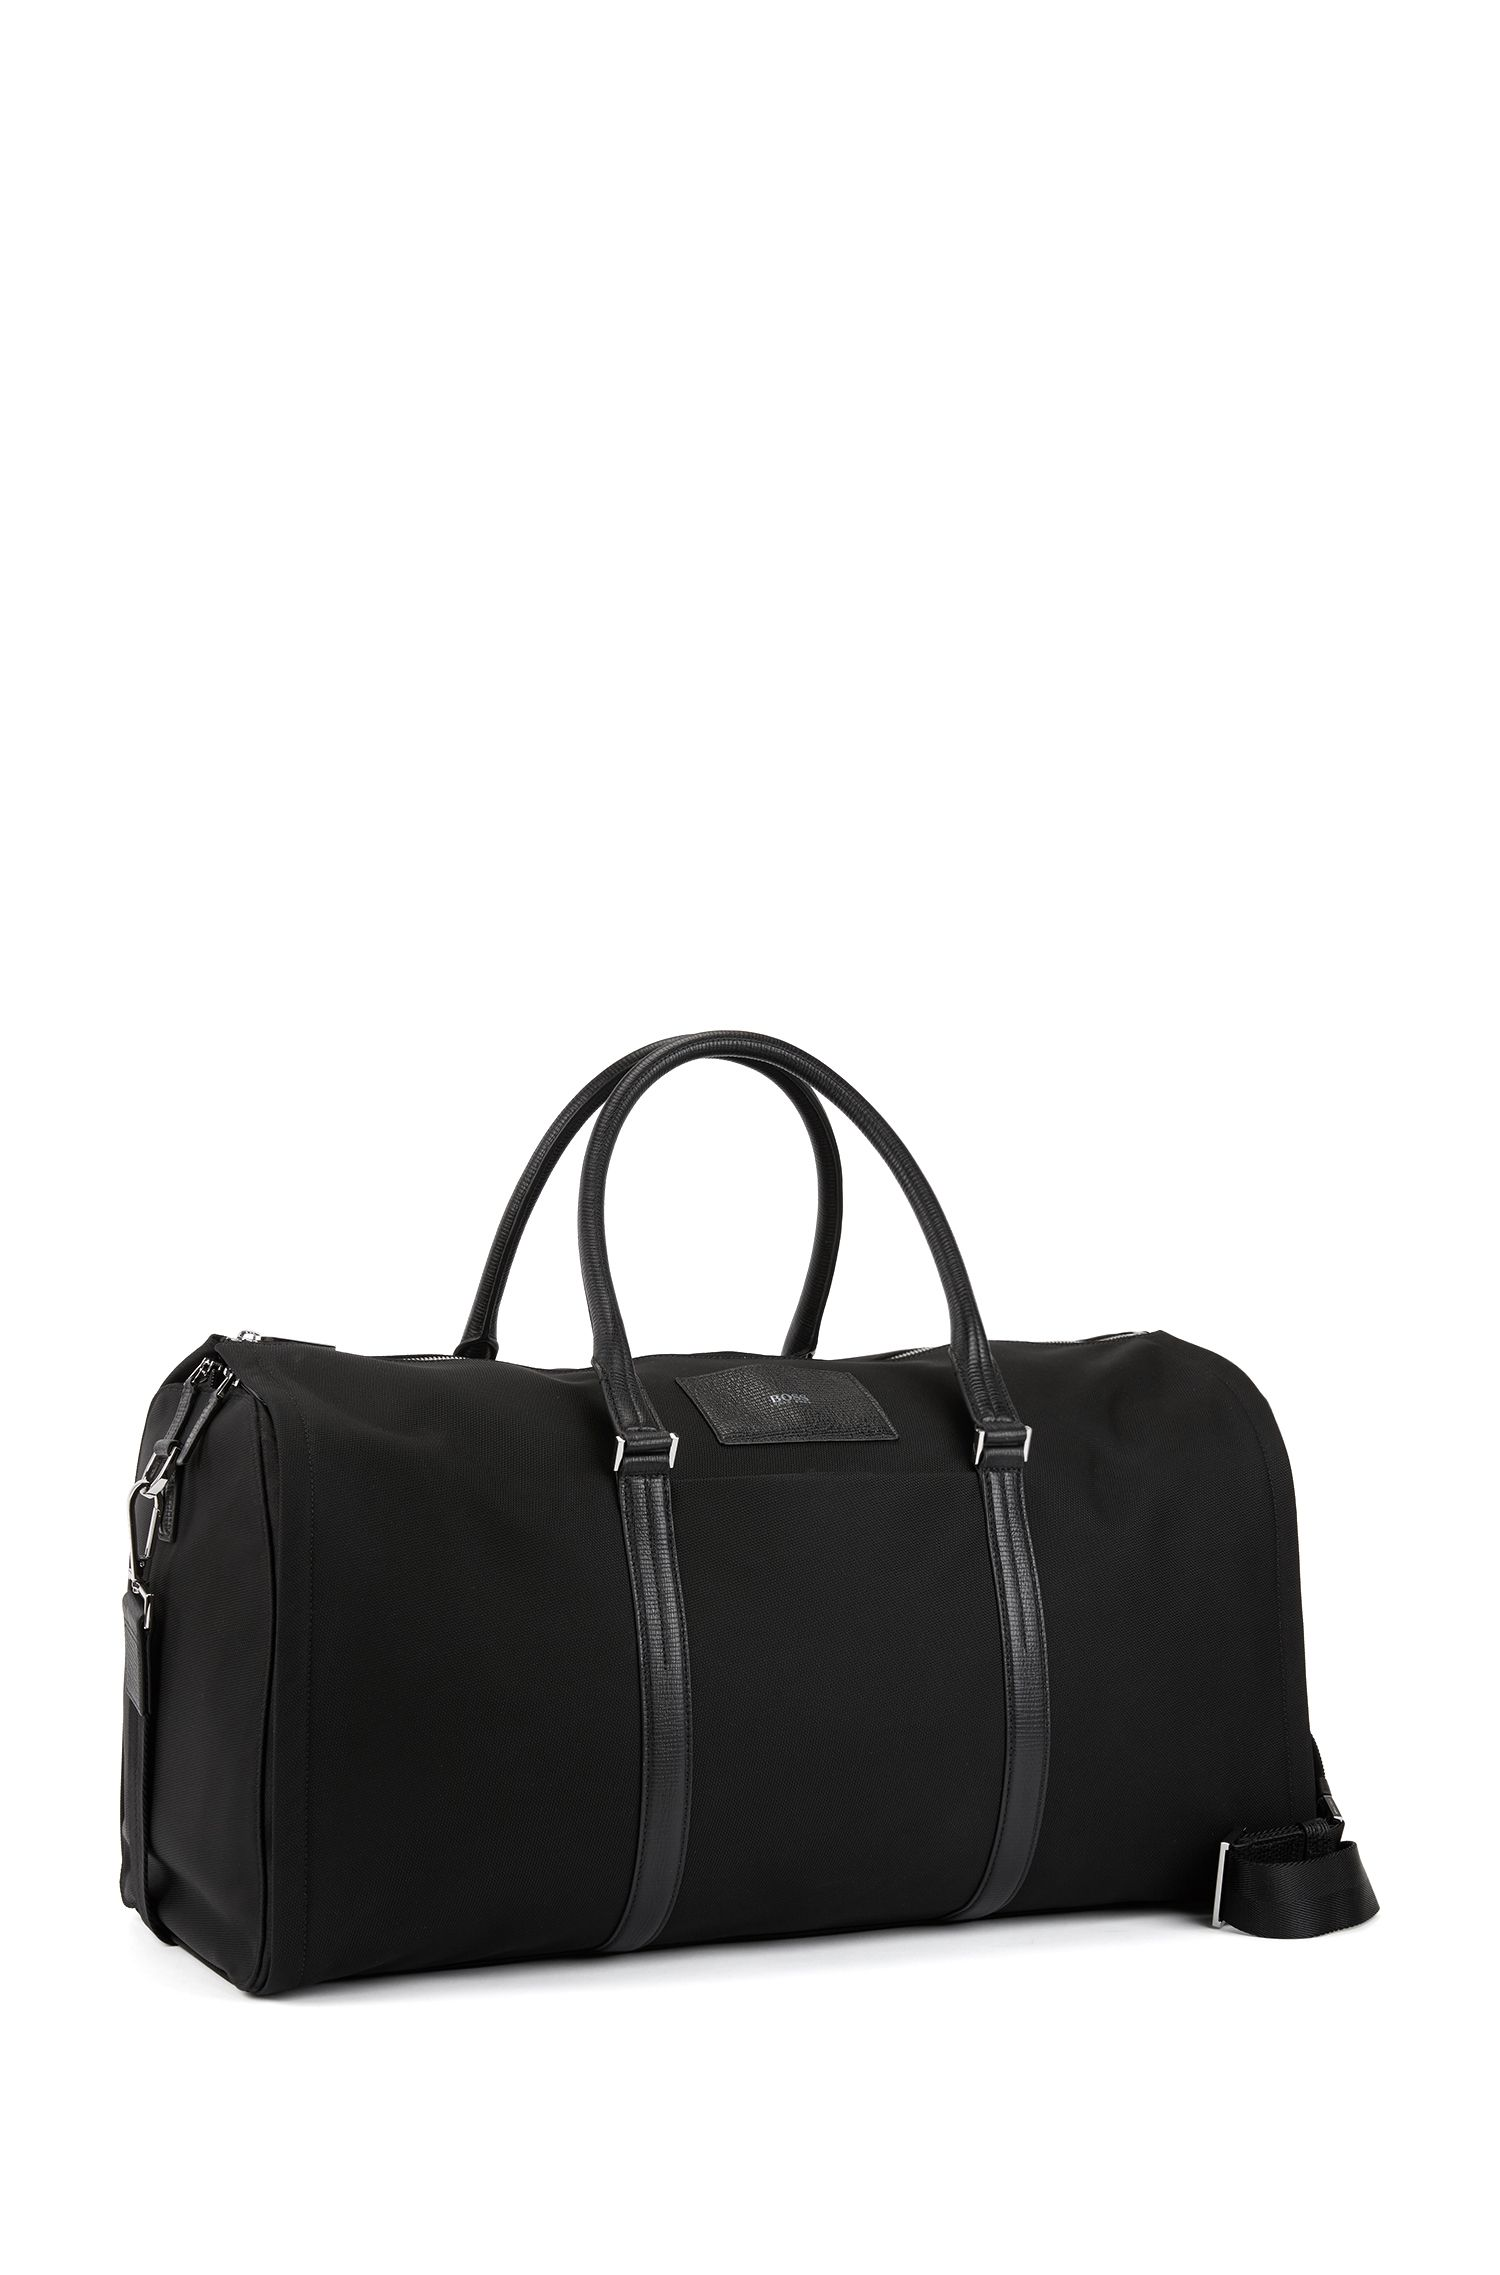 Nylon garment holdall with structured leather trims